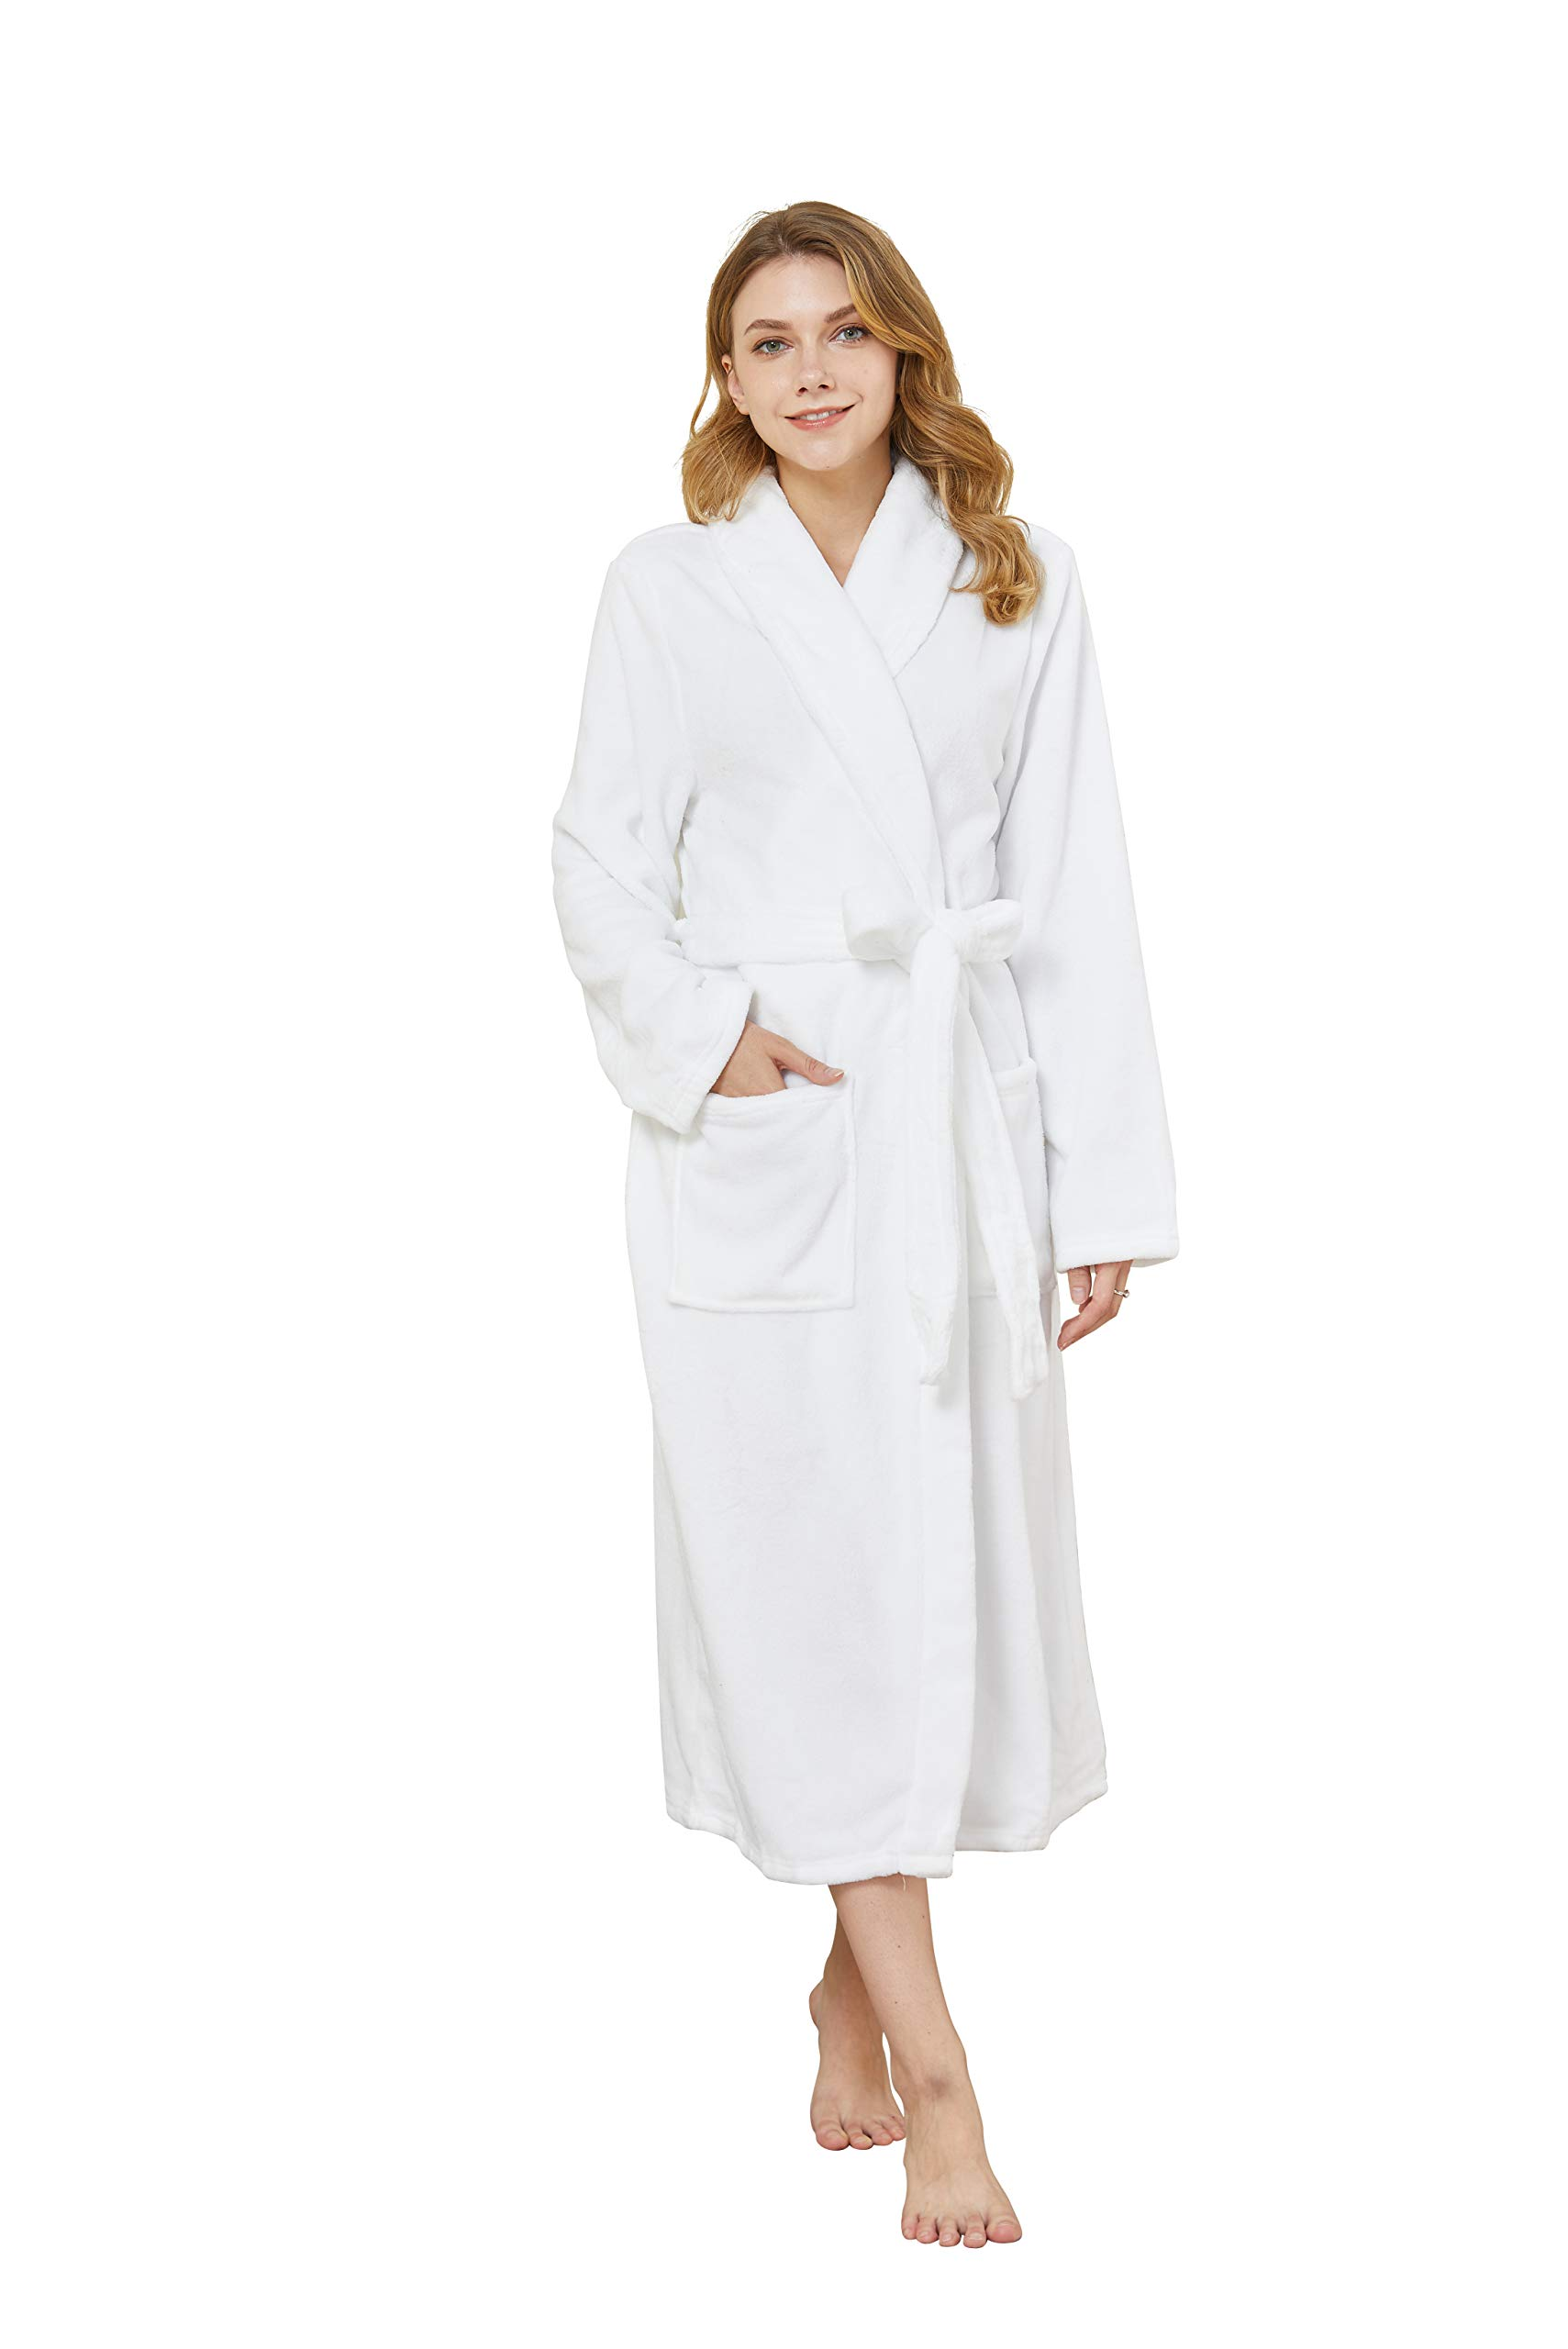 Image of Cozy Fleece White Bath Robe for Women - Available in Blue